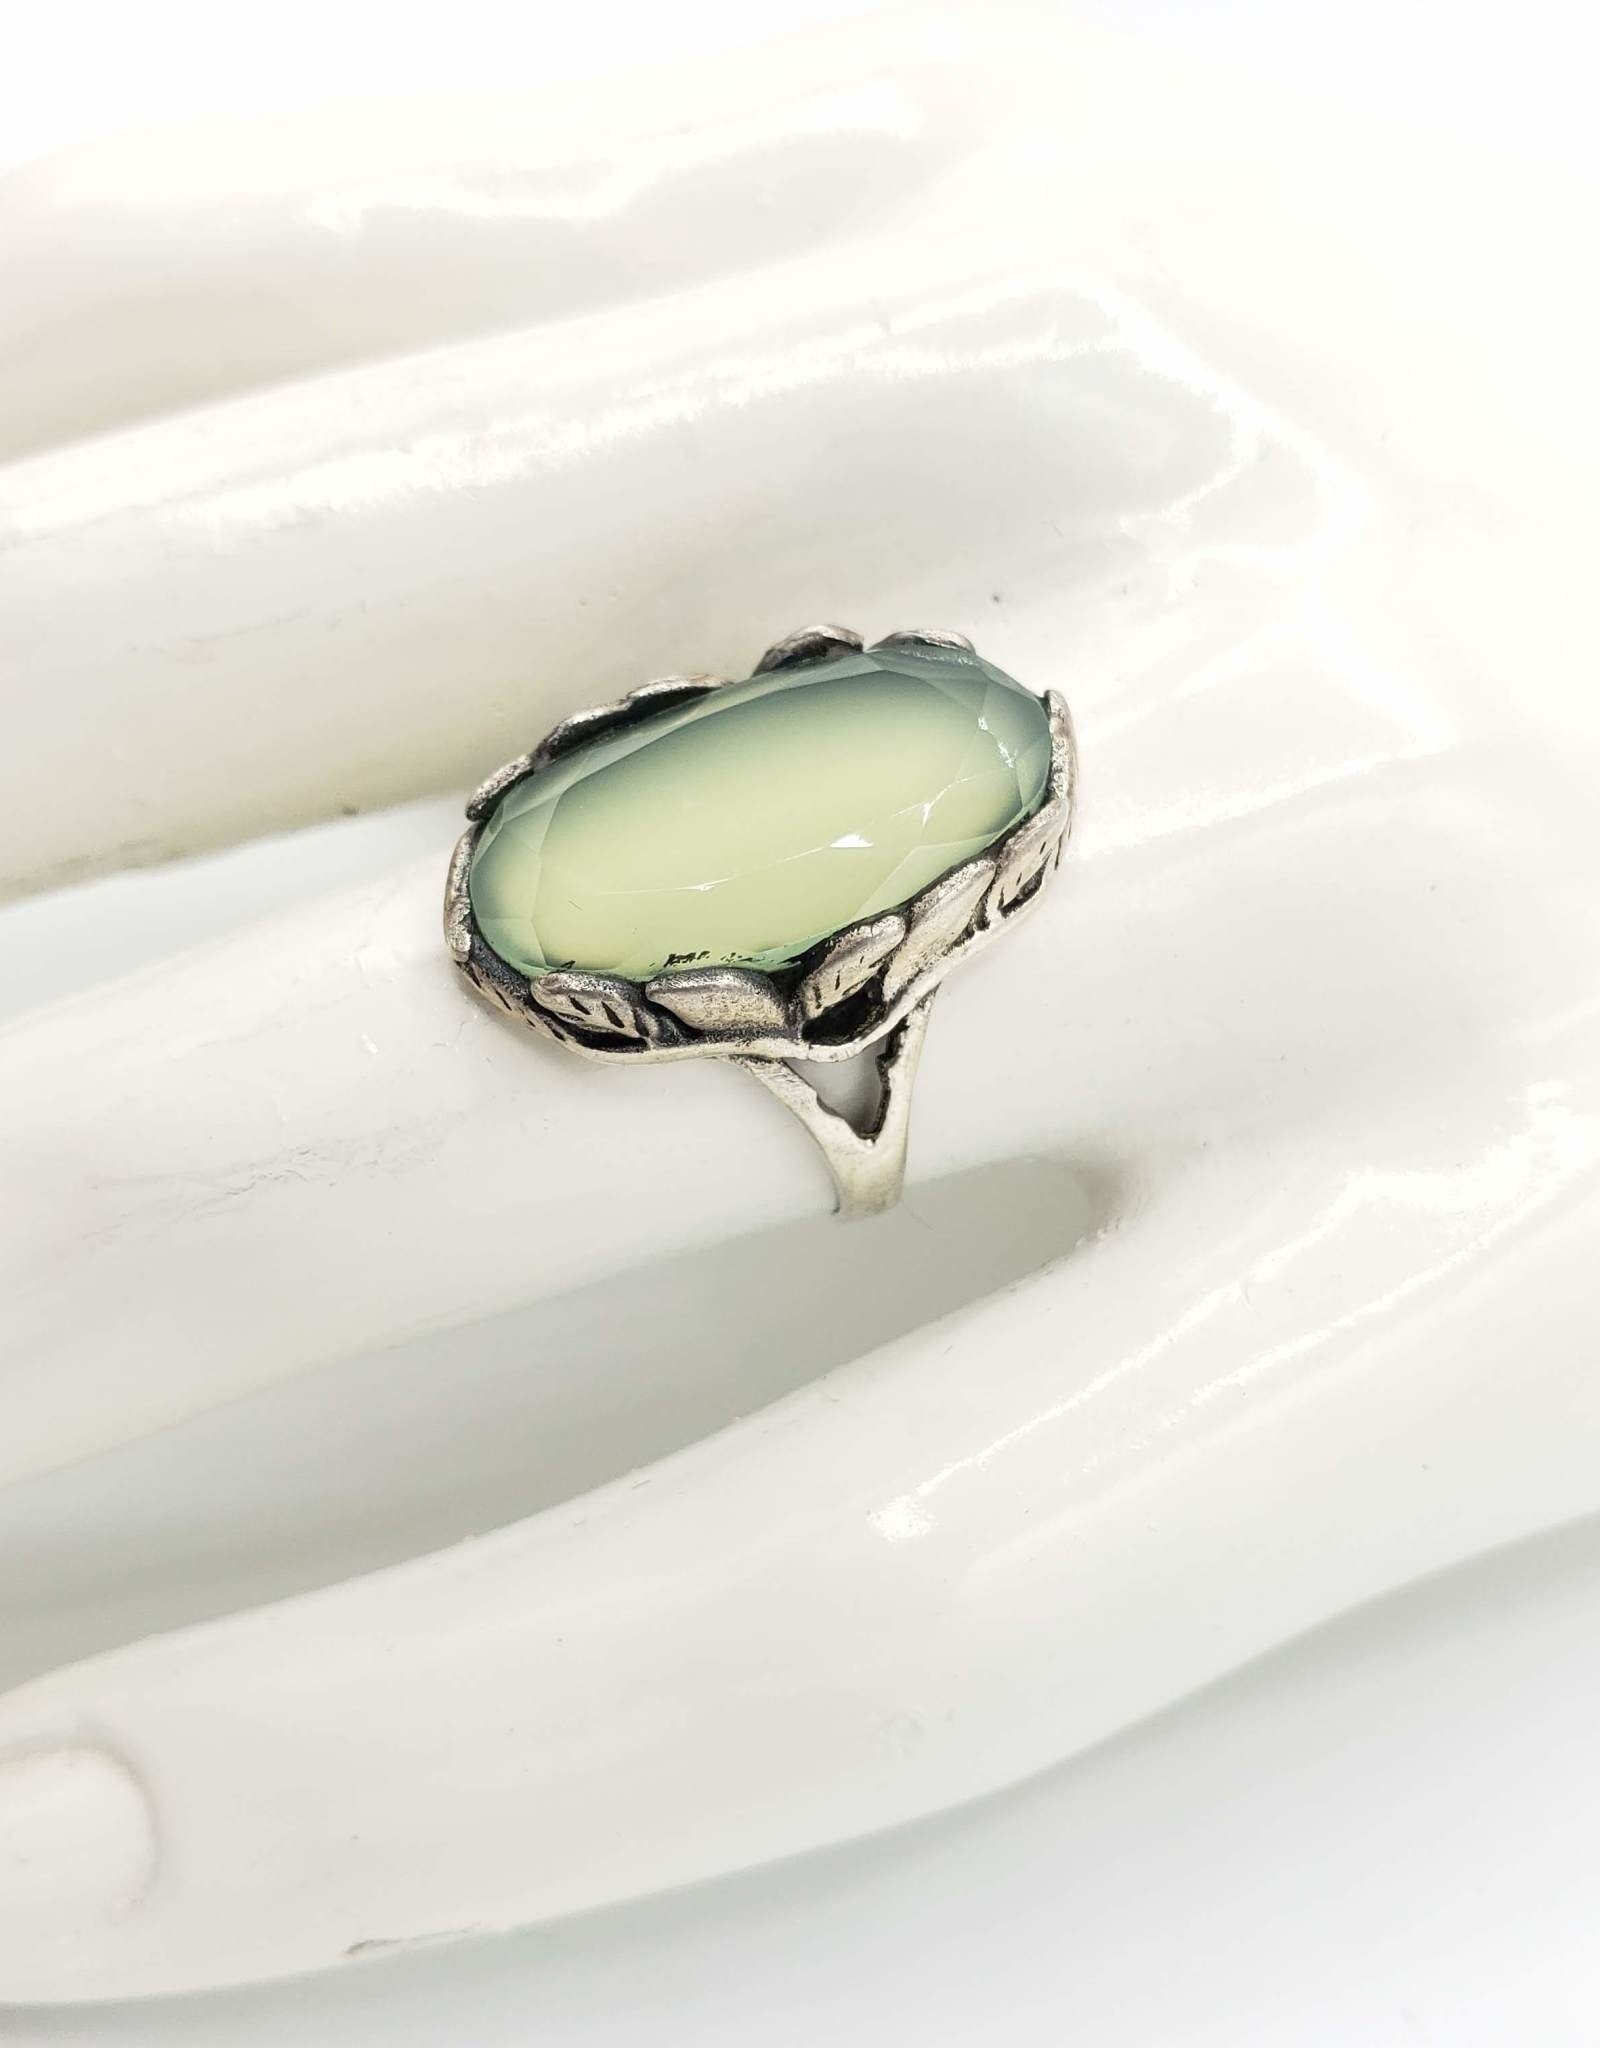 Tiger Mountain Faceted Prehnite Oval in Leaf Setting Sterling Silver Ring